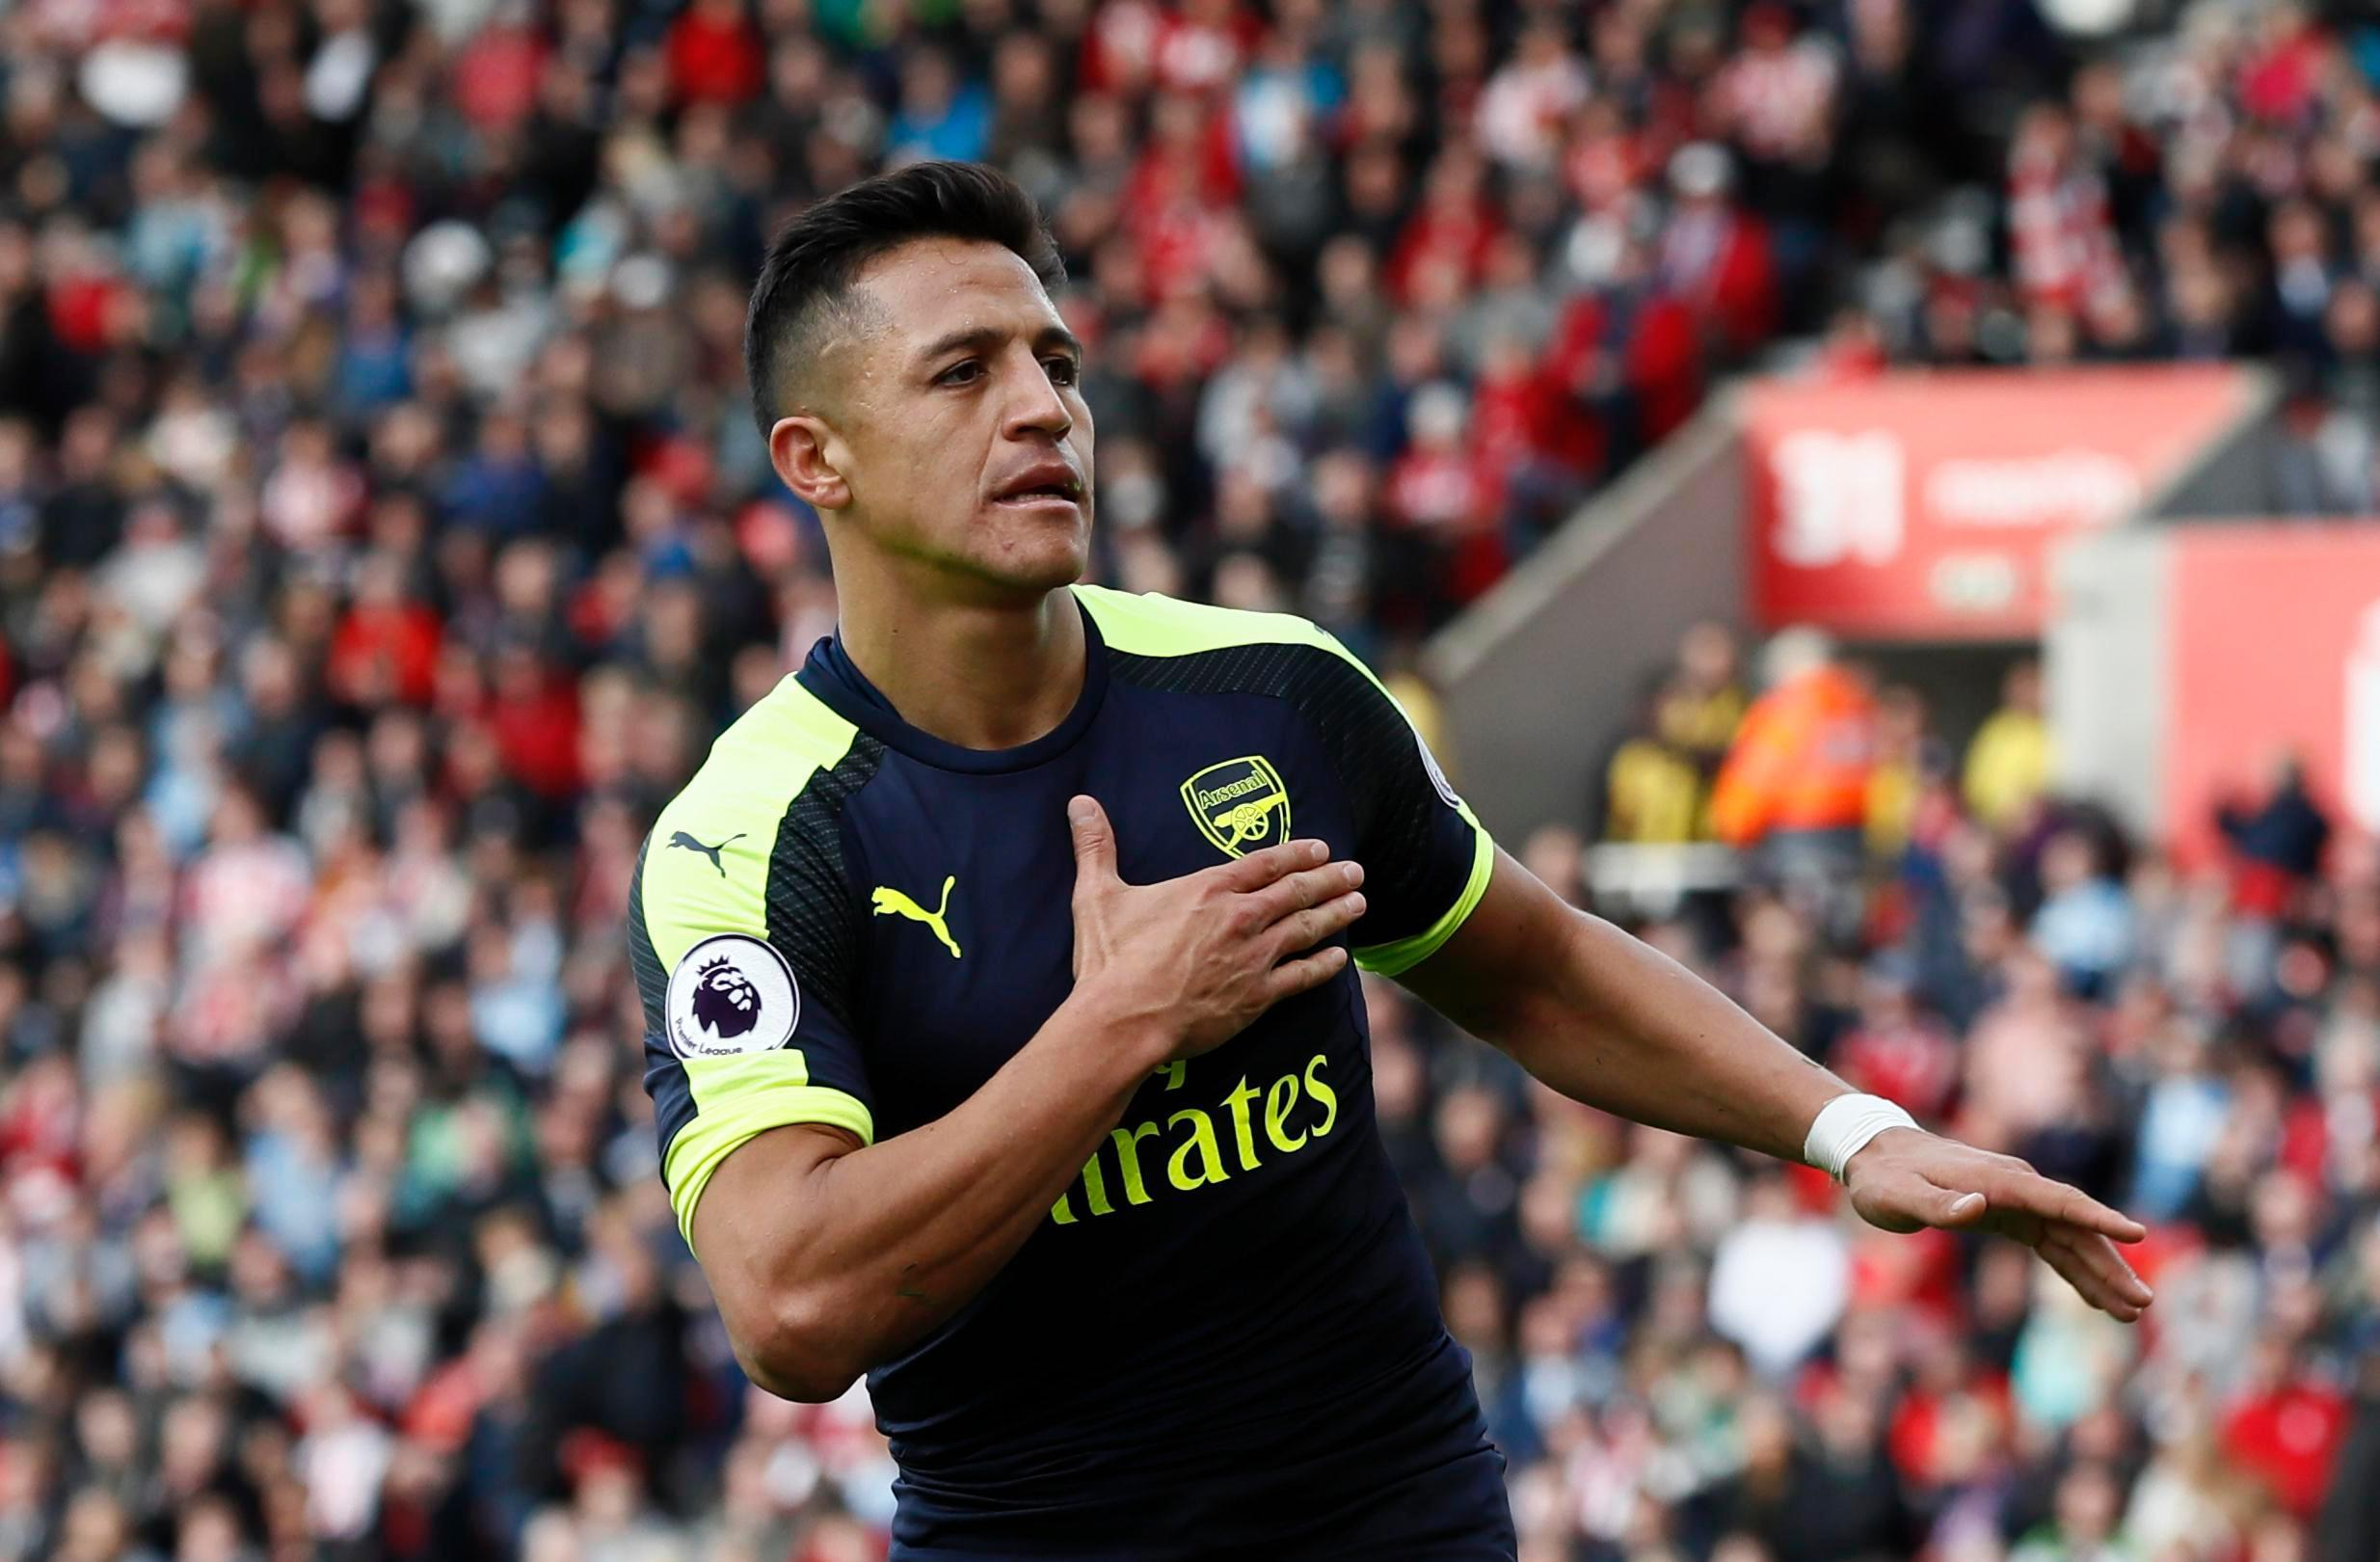 Alexis Sanchez will almost certainly finish as Dream Team's top points scorer